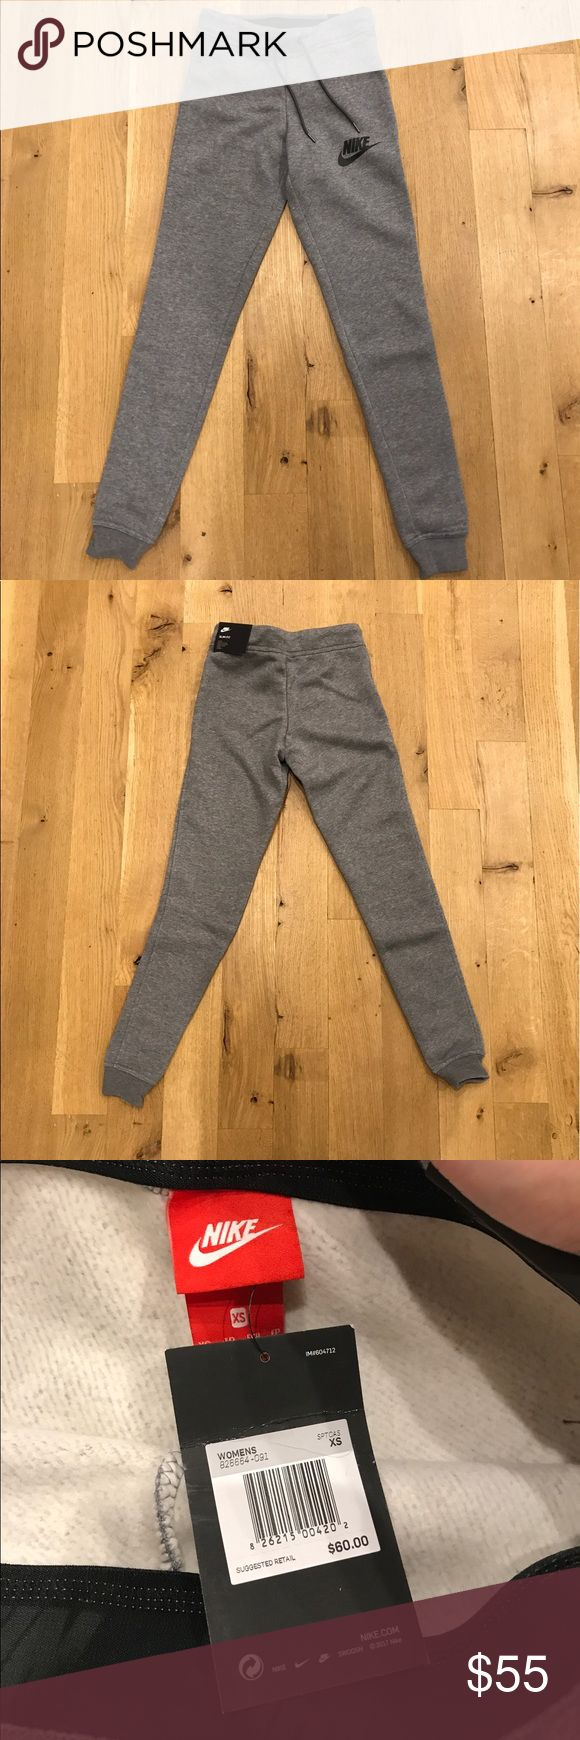 NIKE slim fit joggers in XS Sexy joggers by NIKE, BRaND NEW with tags. Slim fit size XS  Nike  Pants Track Pants & Joggers